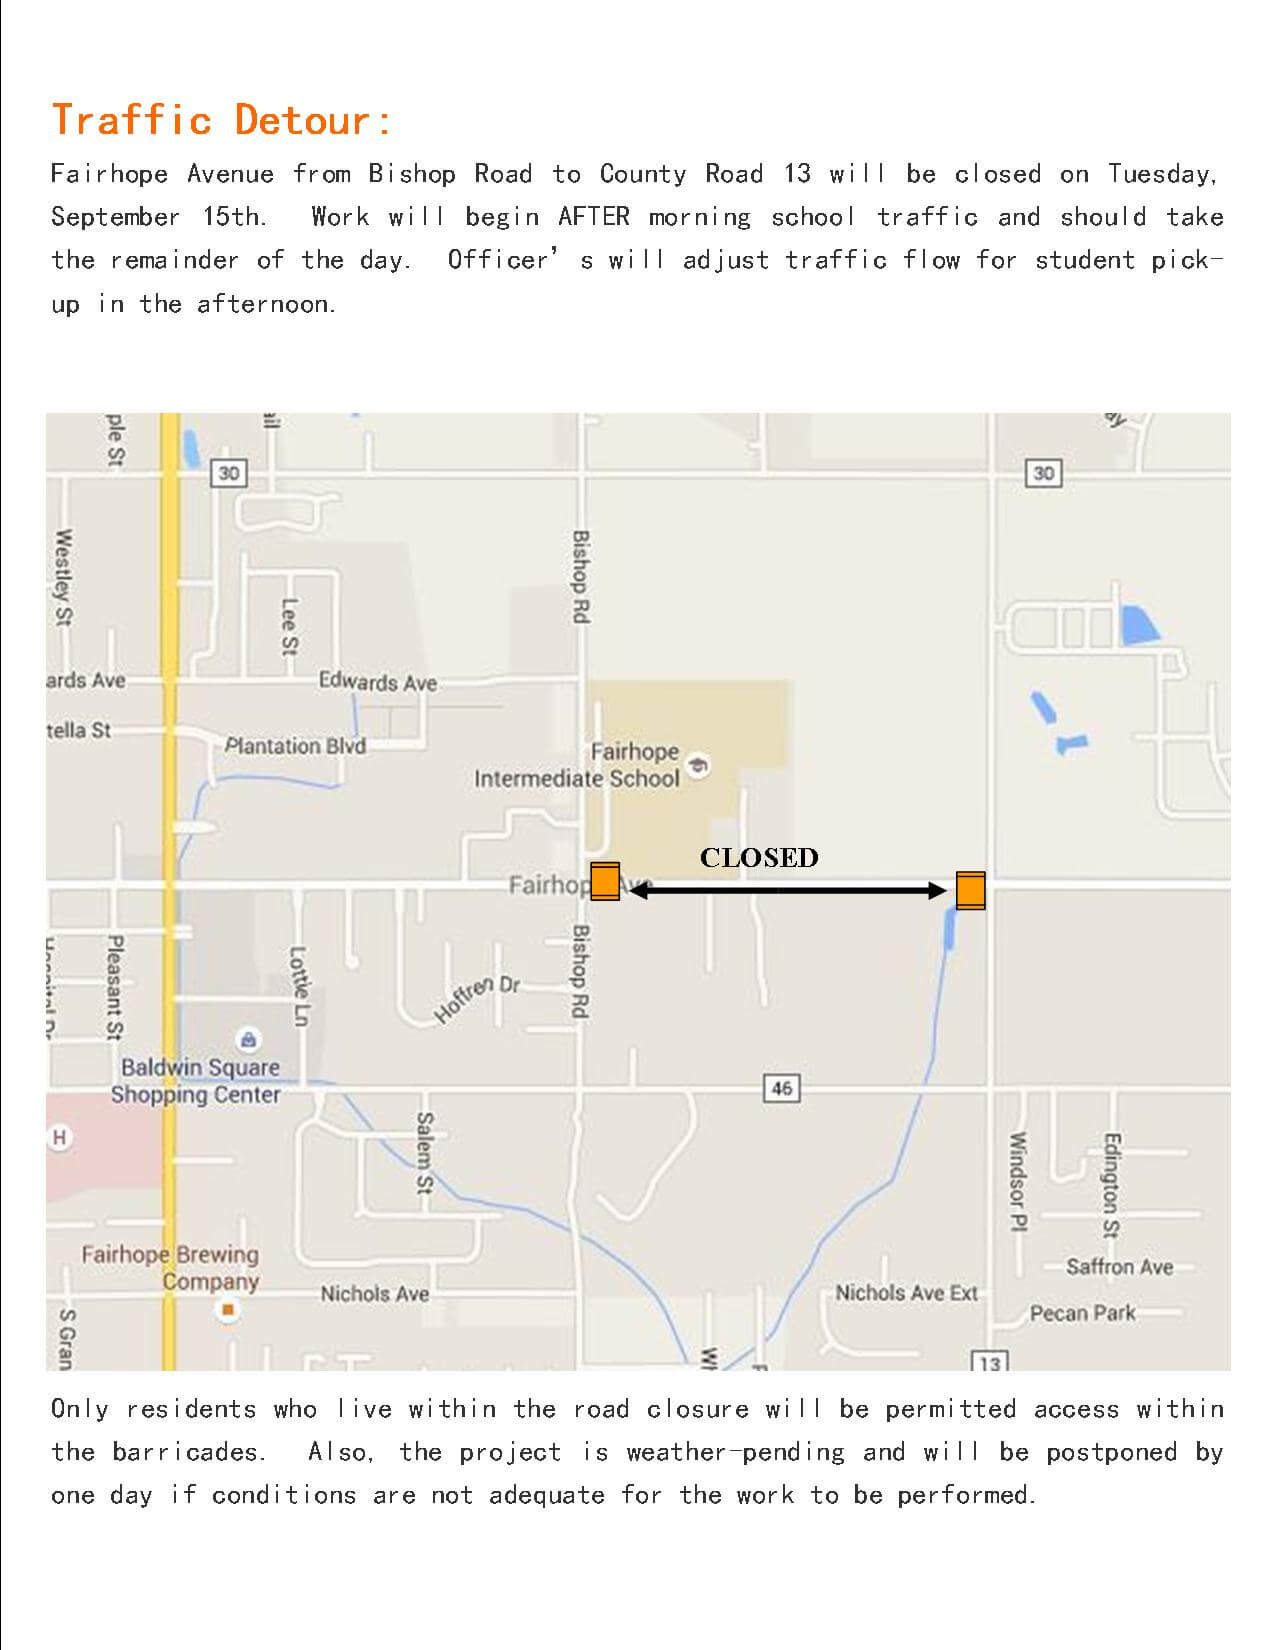 Portion of Fairhope Avenue to close Sept. 15